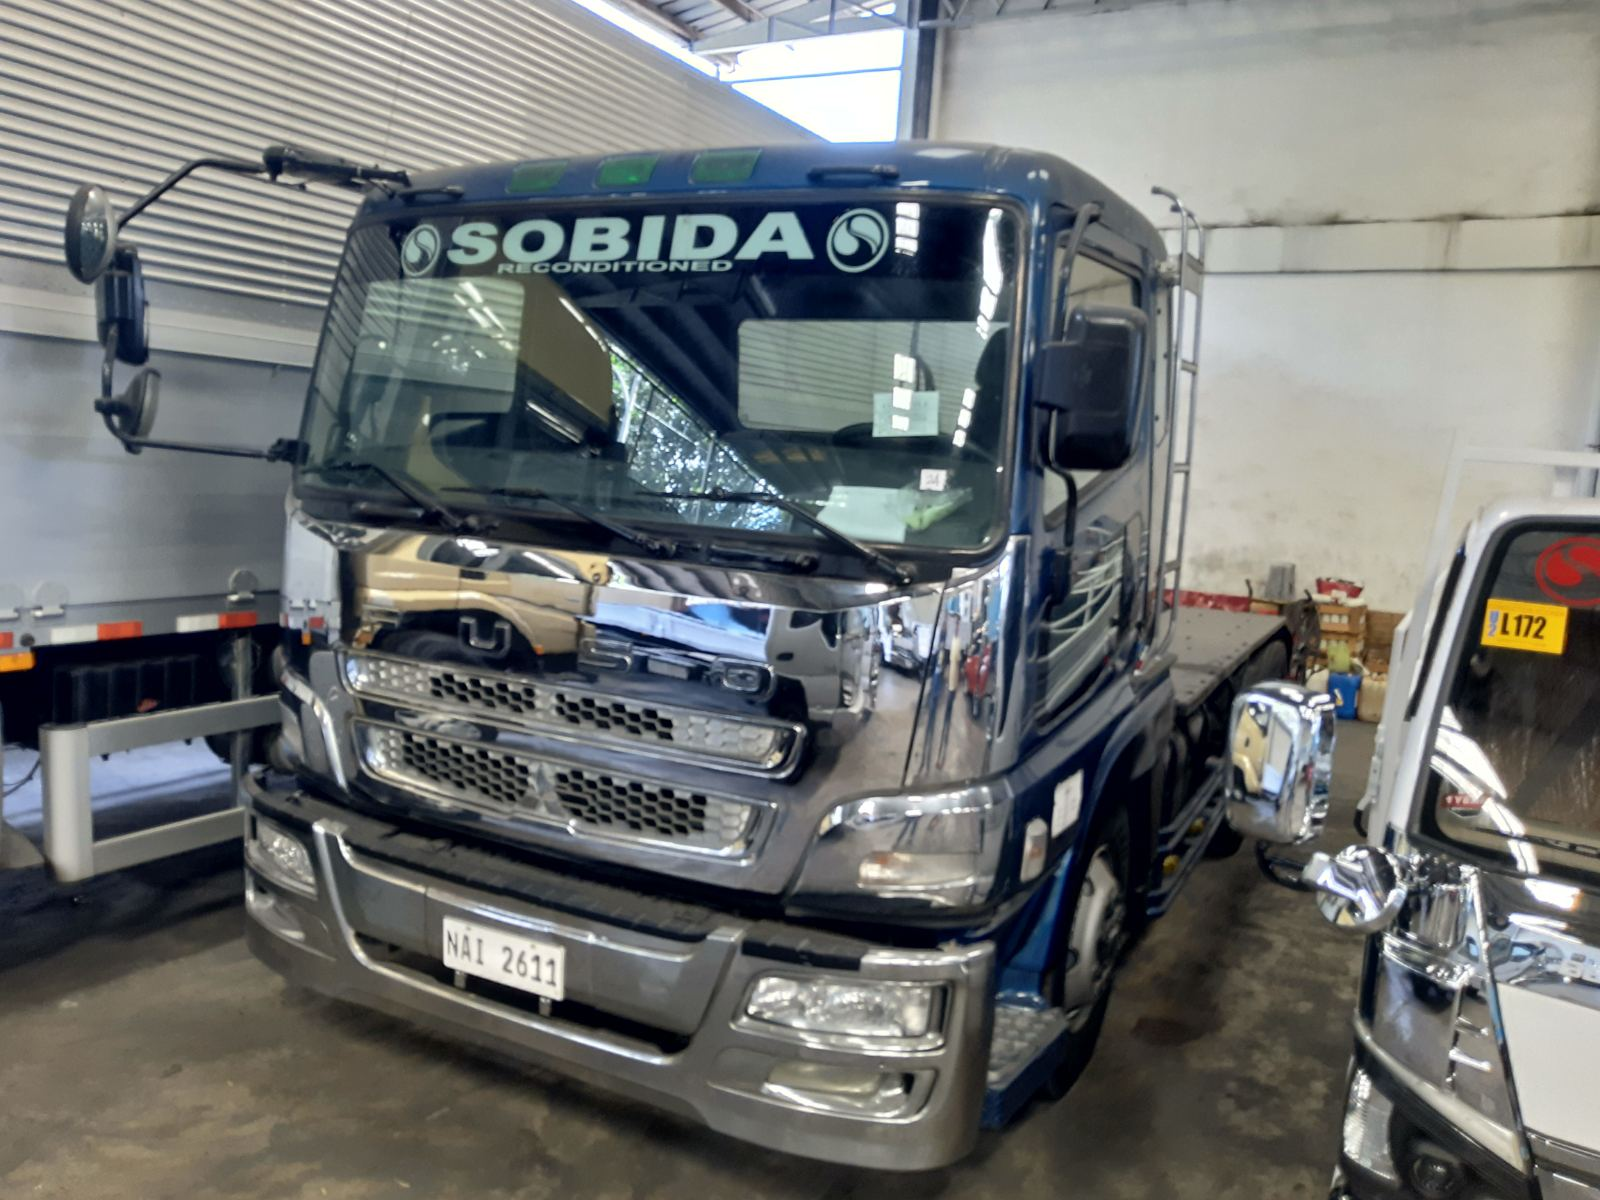 Sobida Mitsubishi FUSO Tractor Head Prime Mover 6x4 10wheel truck photo